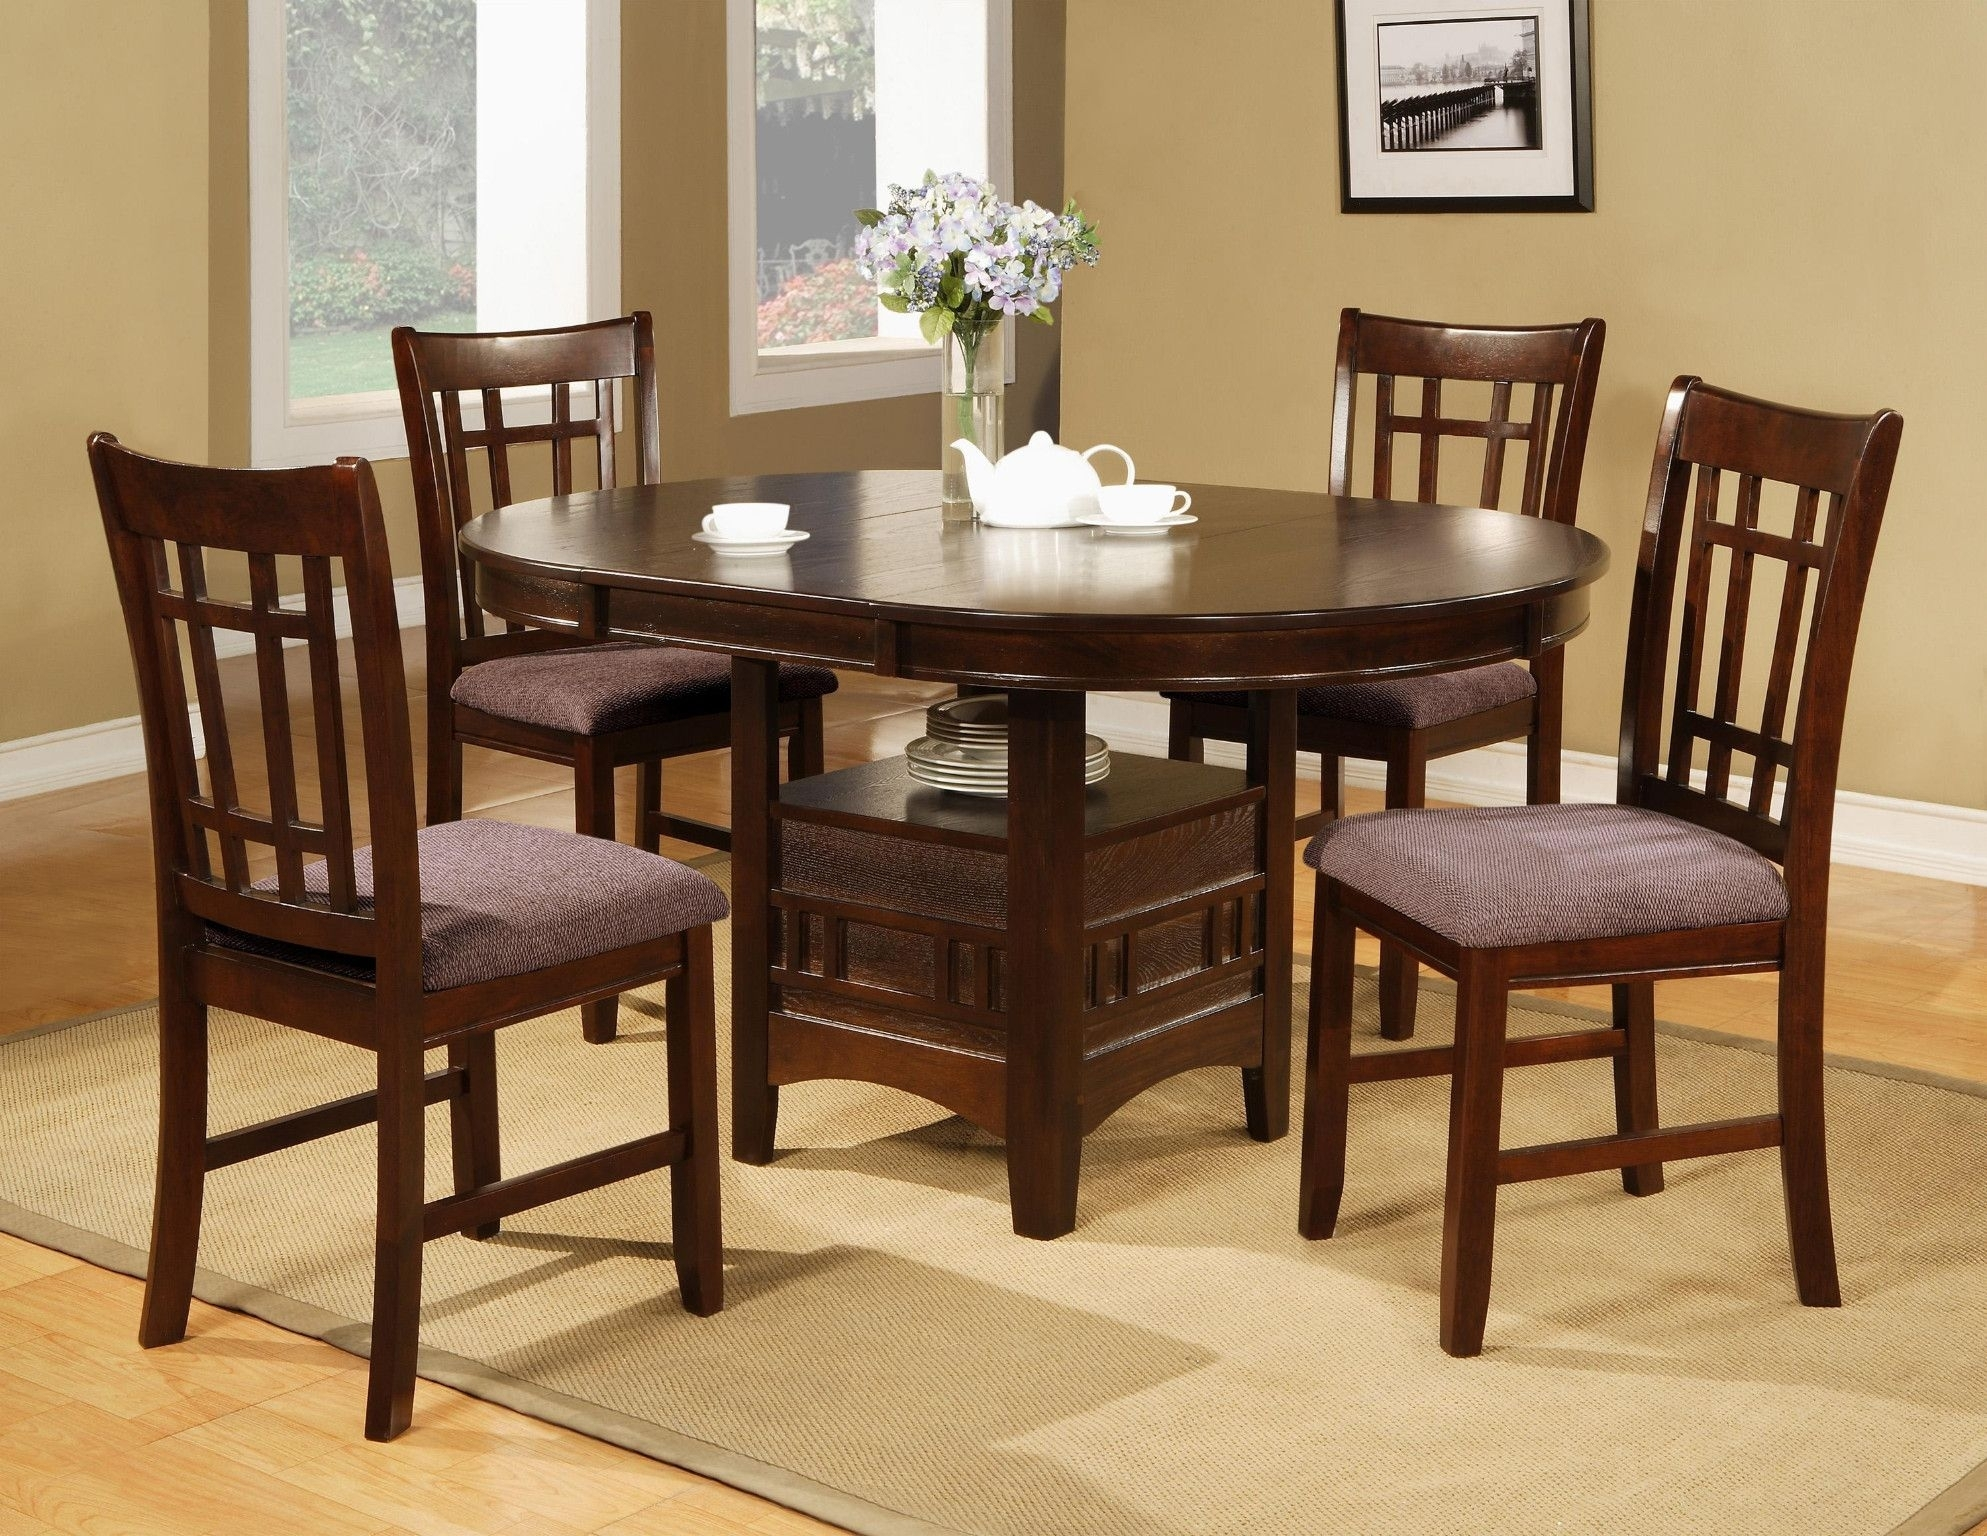 Empire 5 Piece Dinette Table And 4 Chairs $568.00 Table $ (Image 8 of 20)